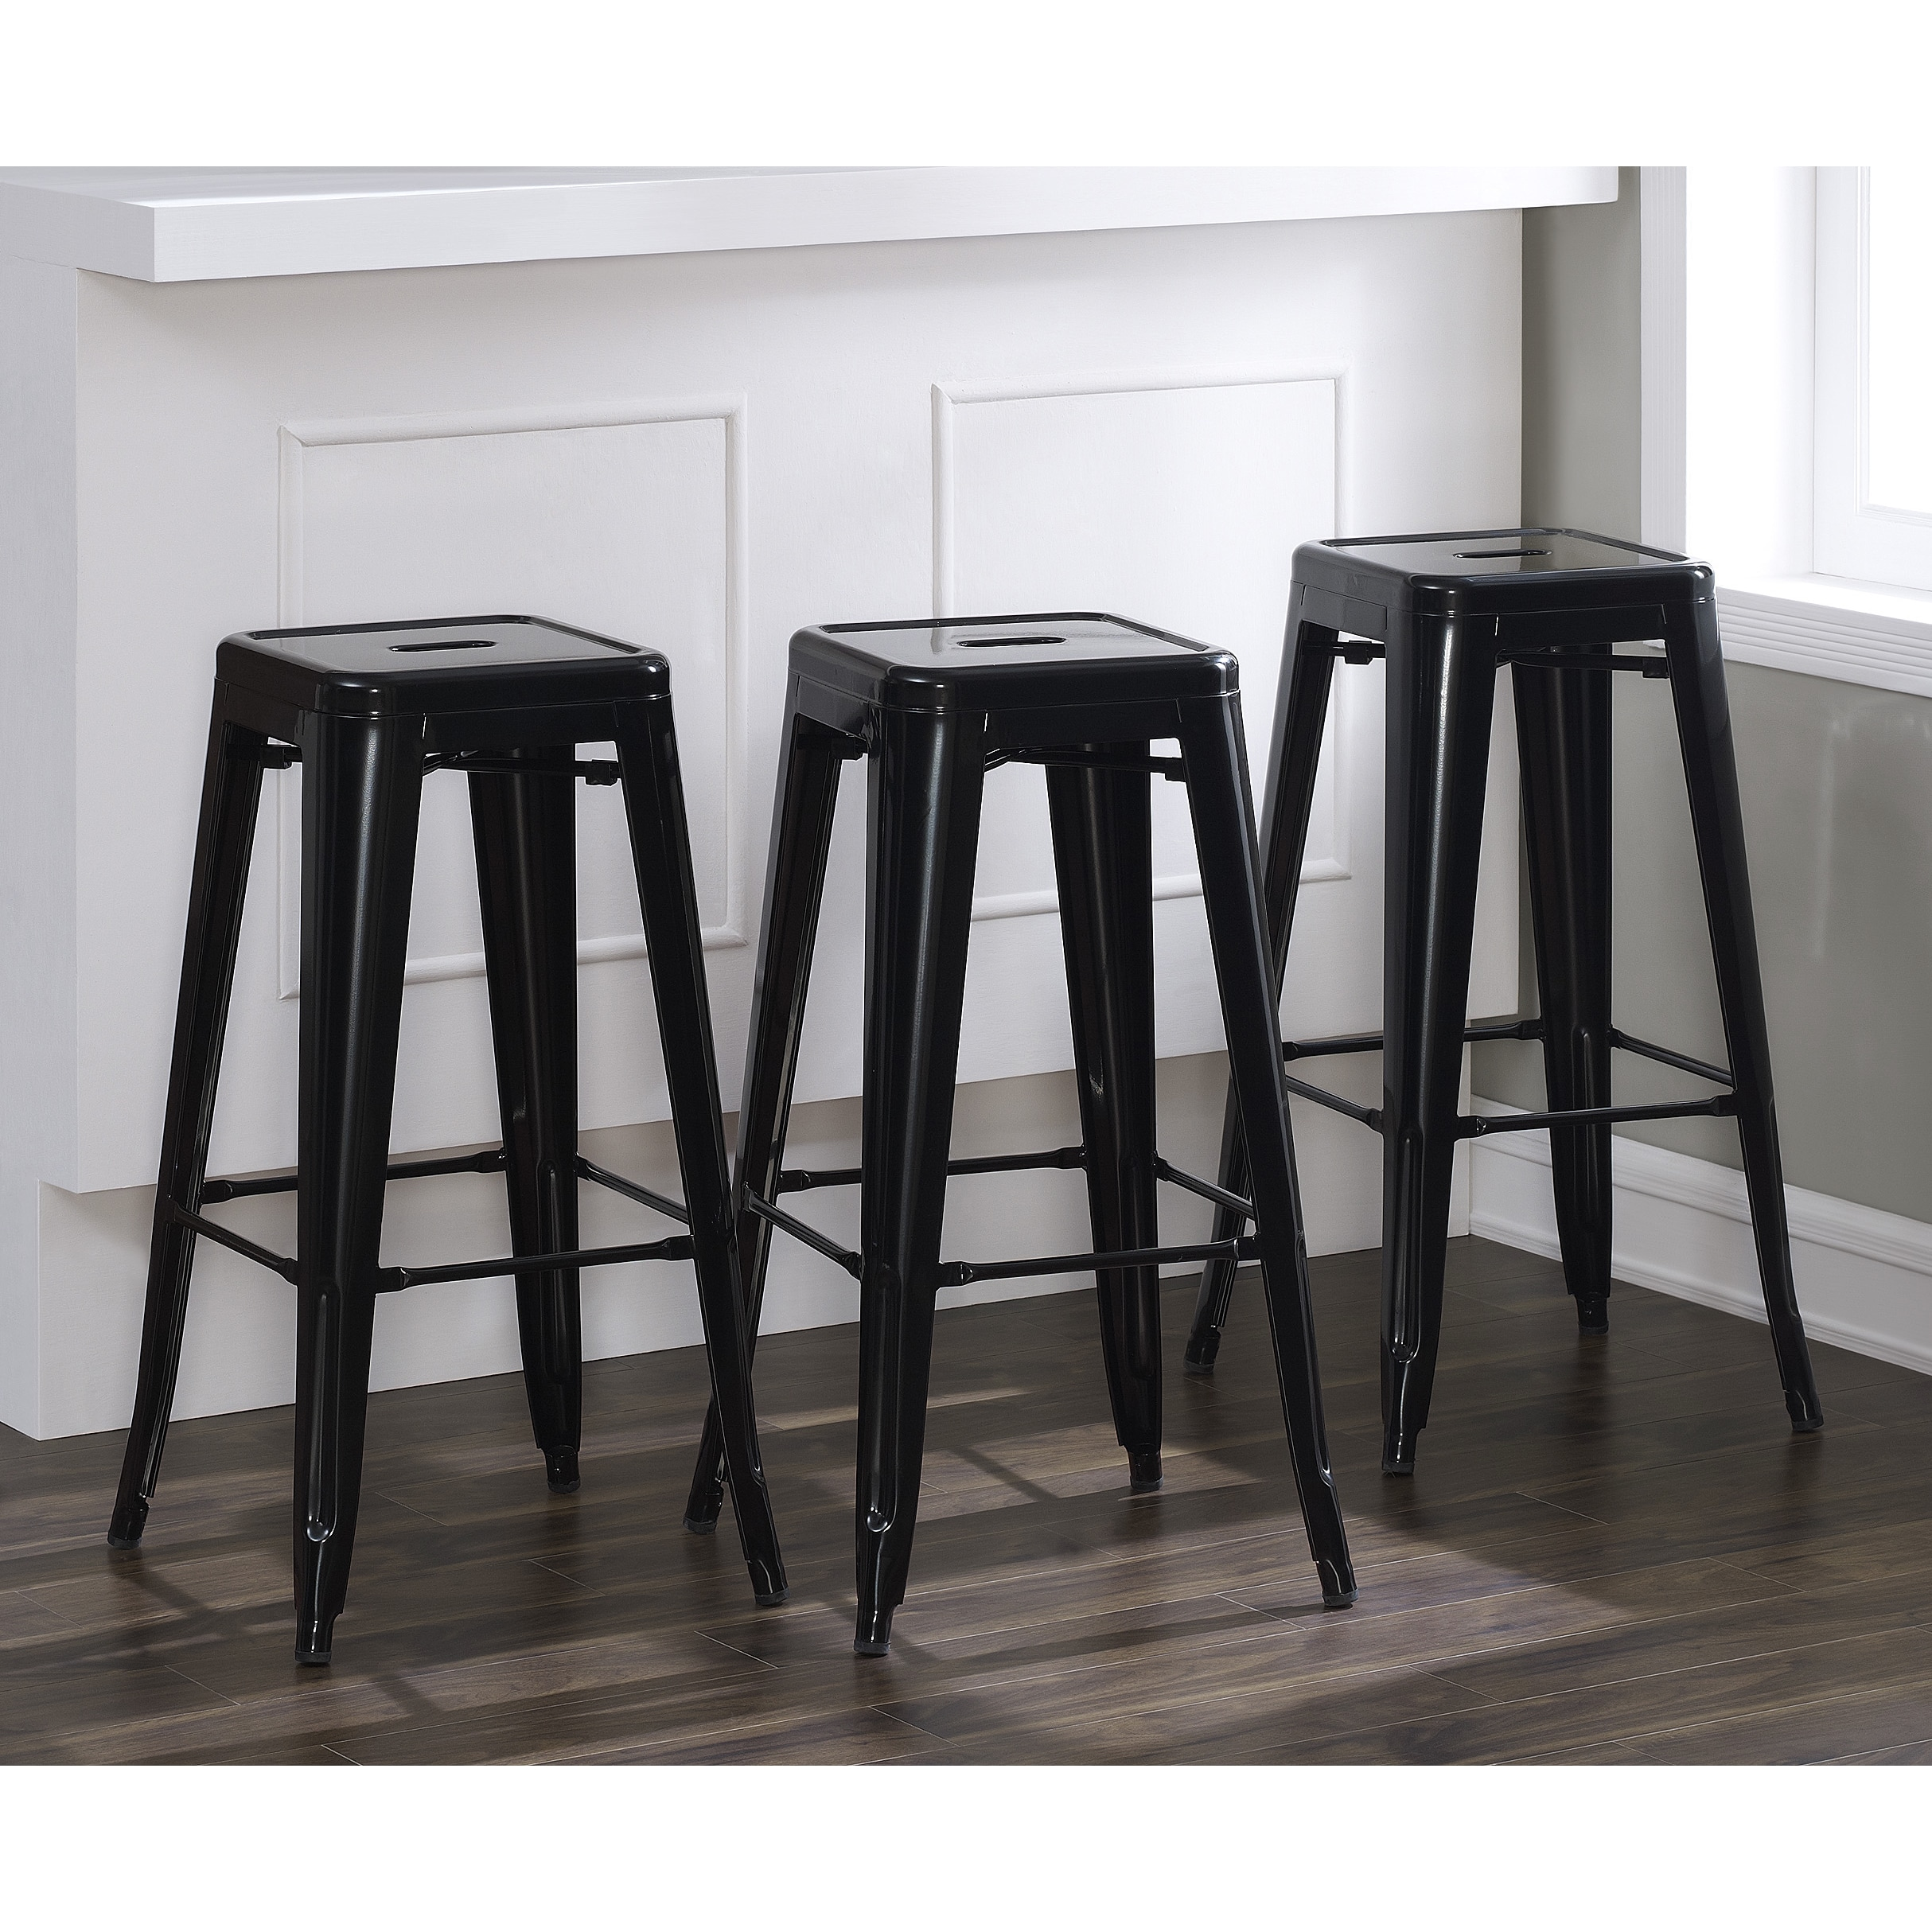 Shop Tabouret 30 Inch Metal Black Bar Stool Set Of 3 Free